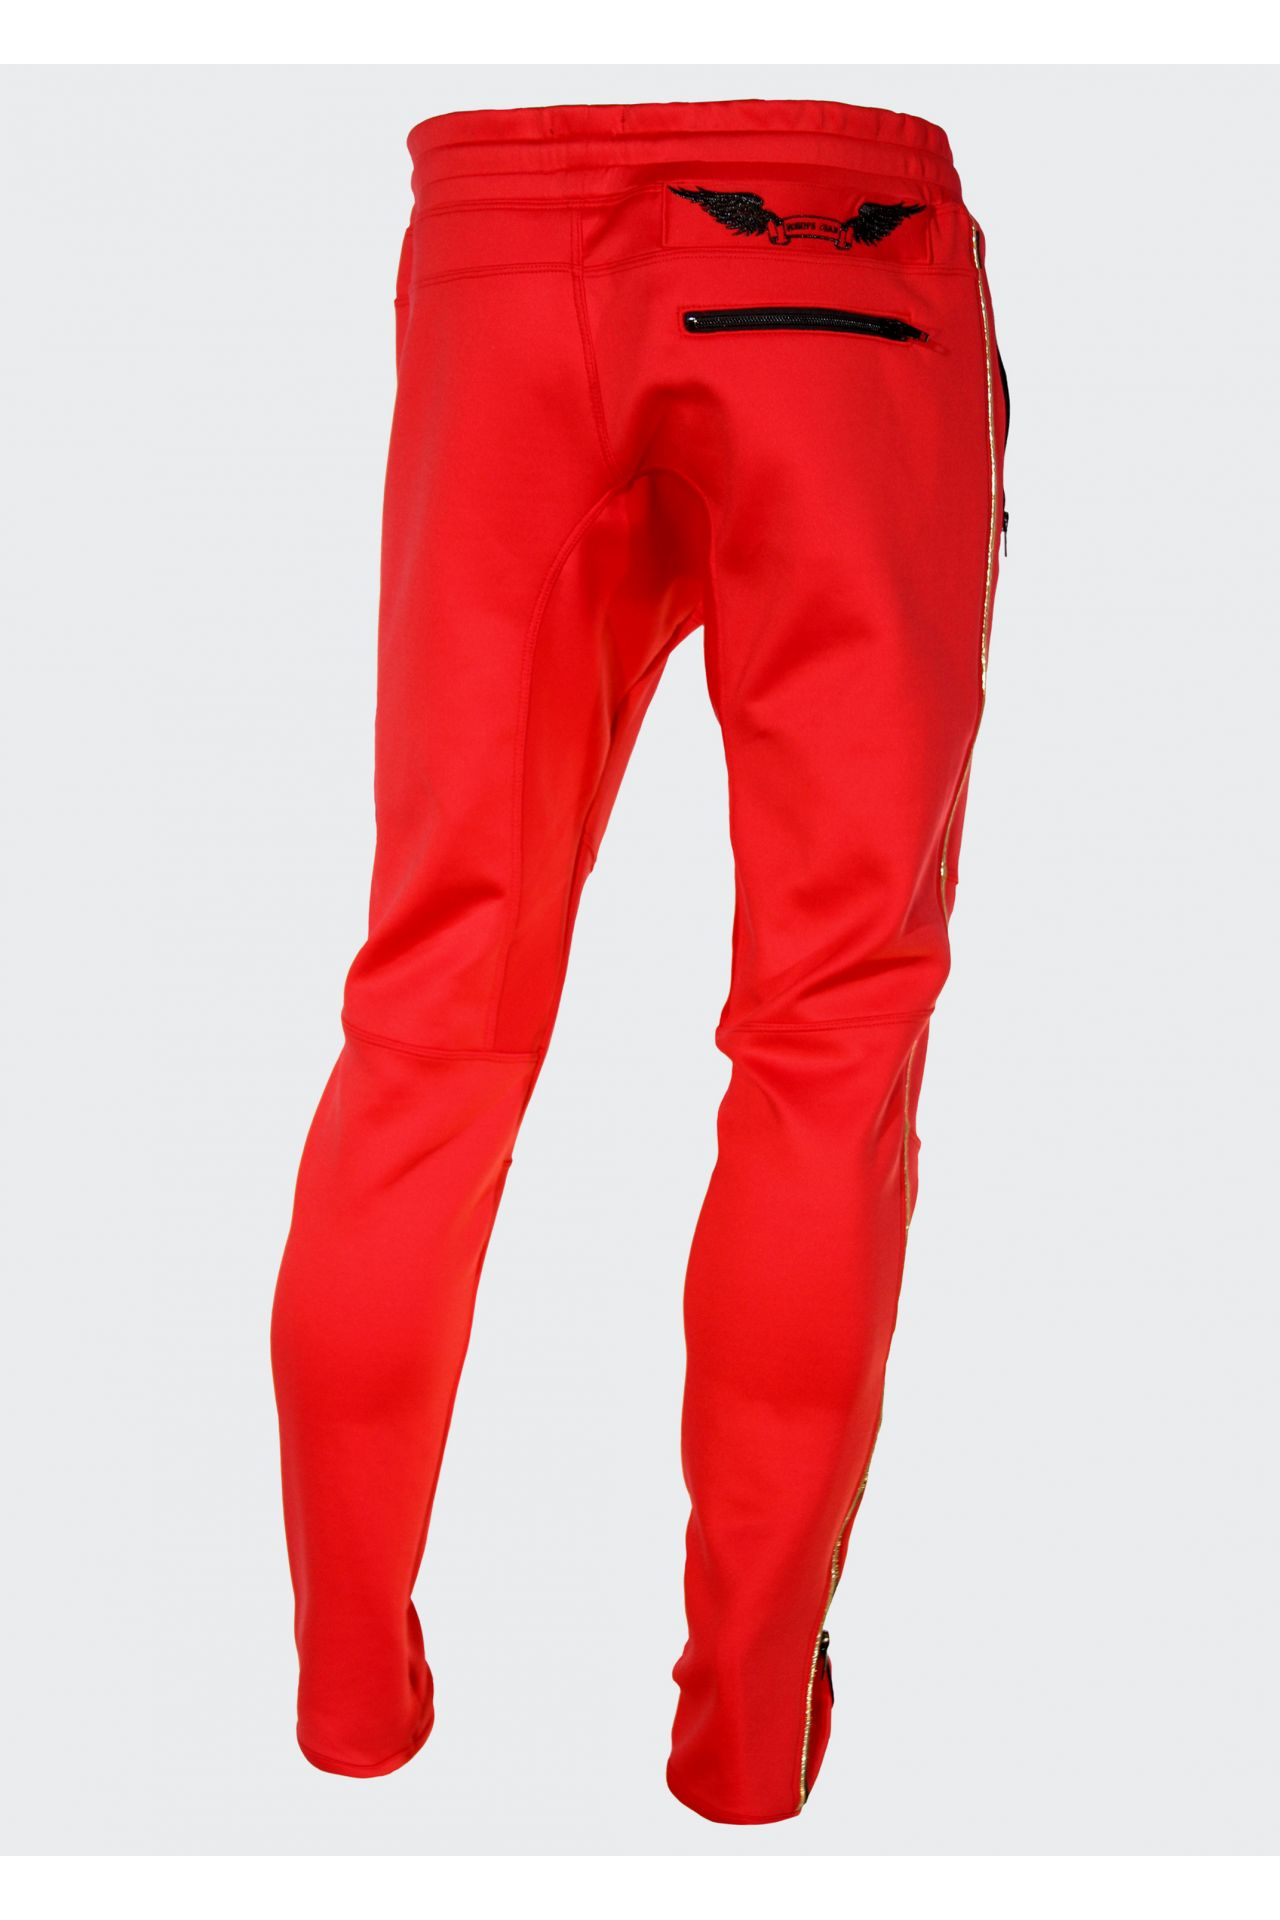 JOGGER IN RED WITH TIGER PATCH